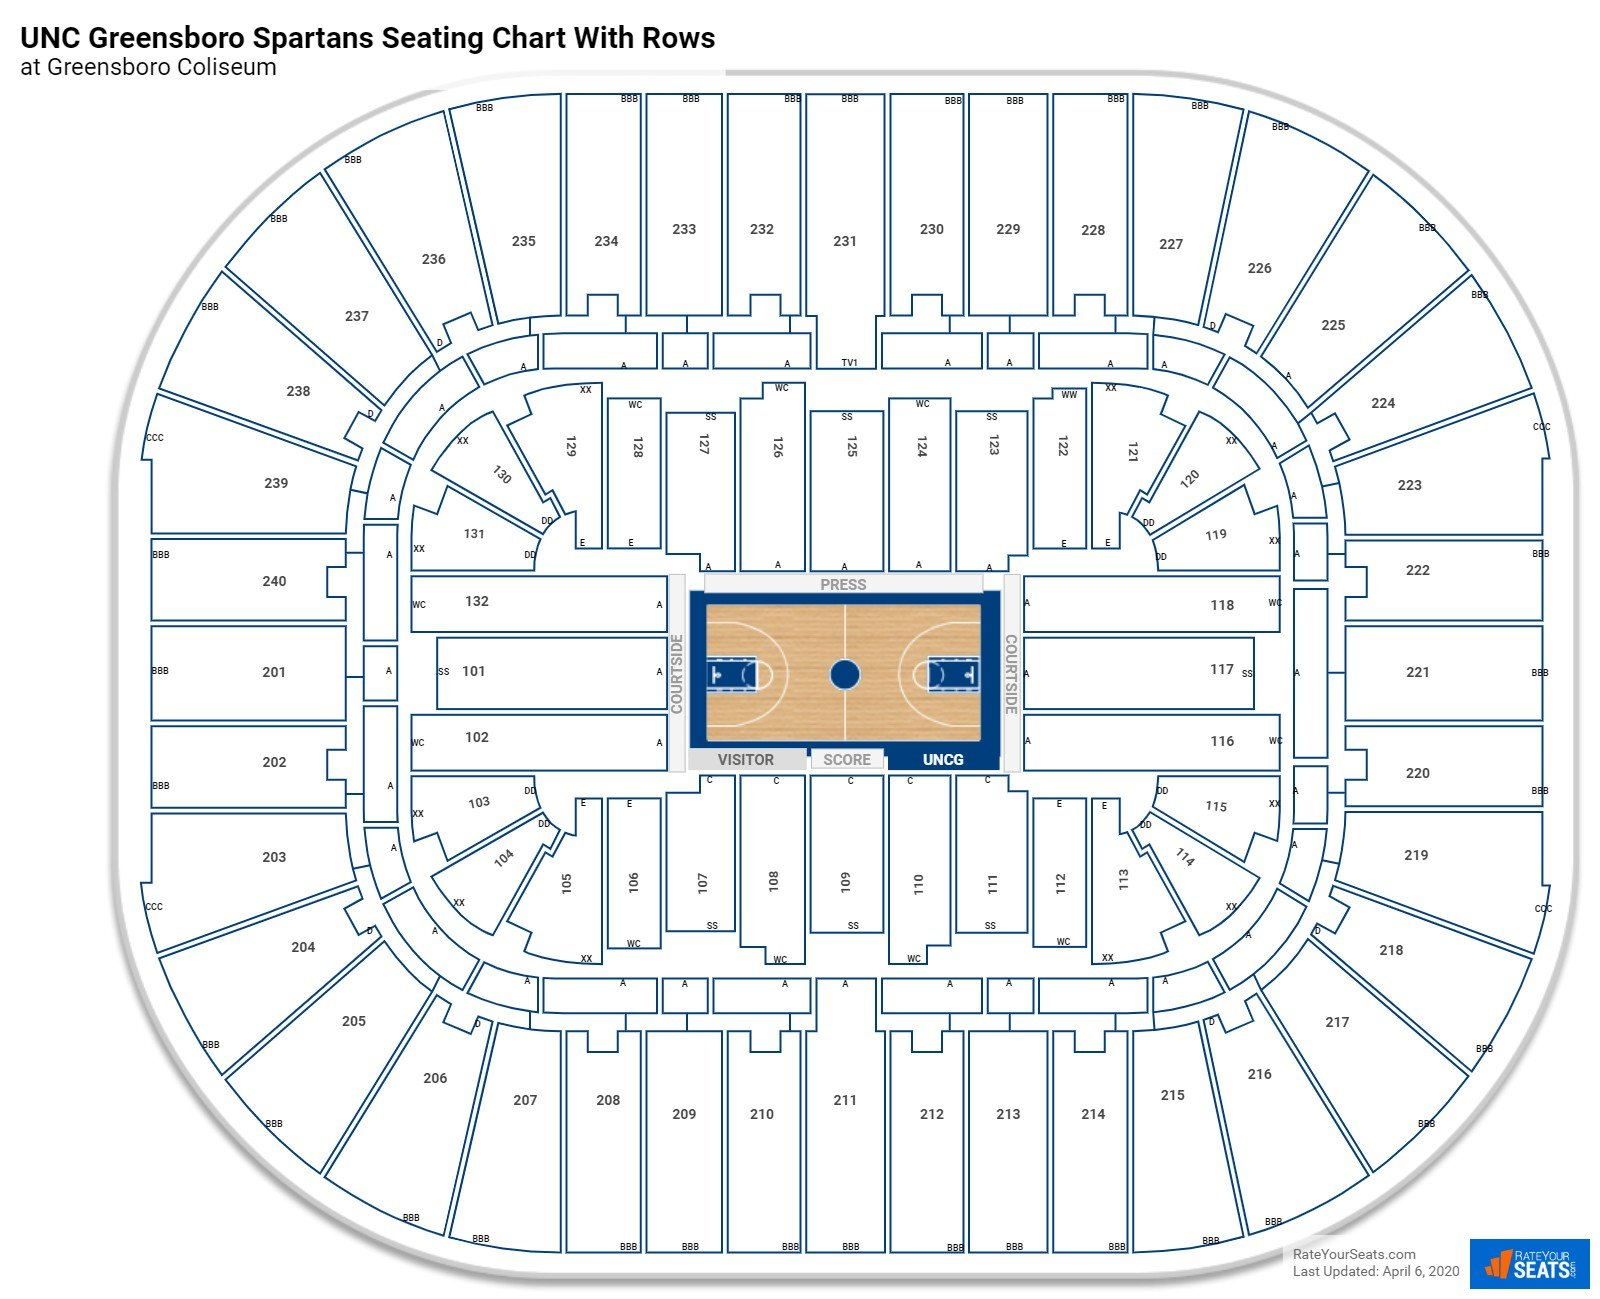 Greensboro Coliseum seating chart with rows basketball